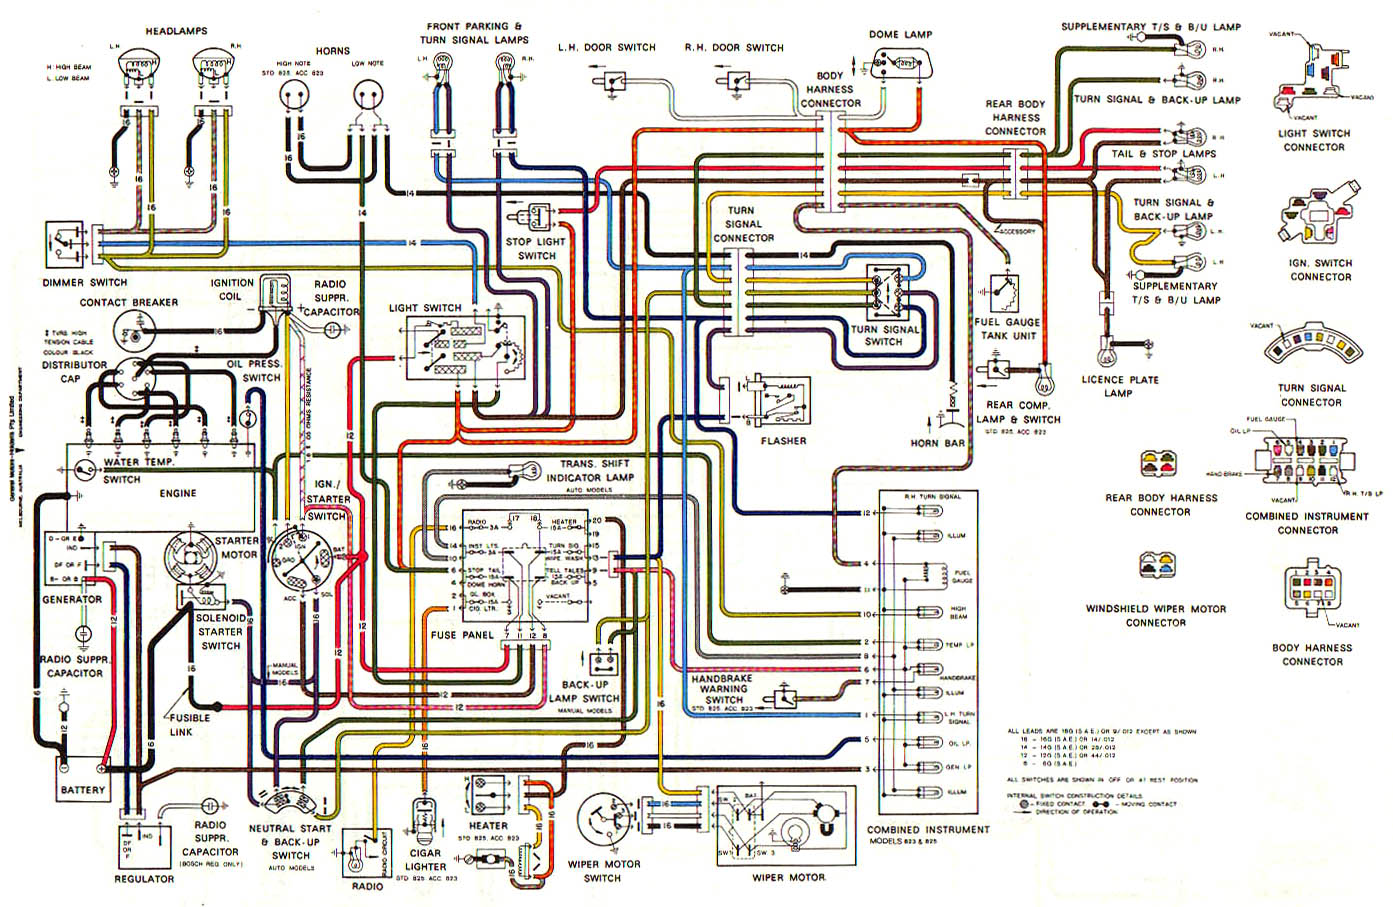 StandardWiringHarness vx ls1 alternator wiring diagram efcaviation com vy ls1 wiring diagram at creativeand.co